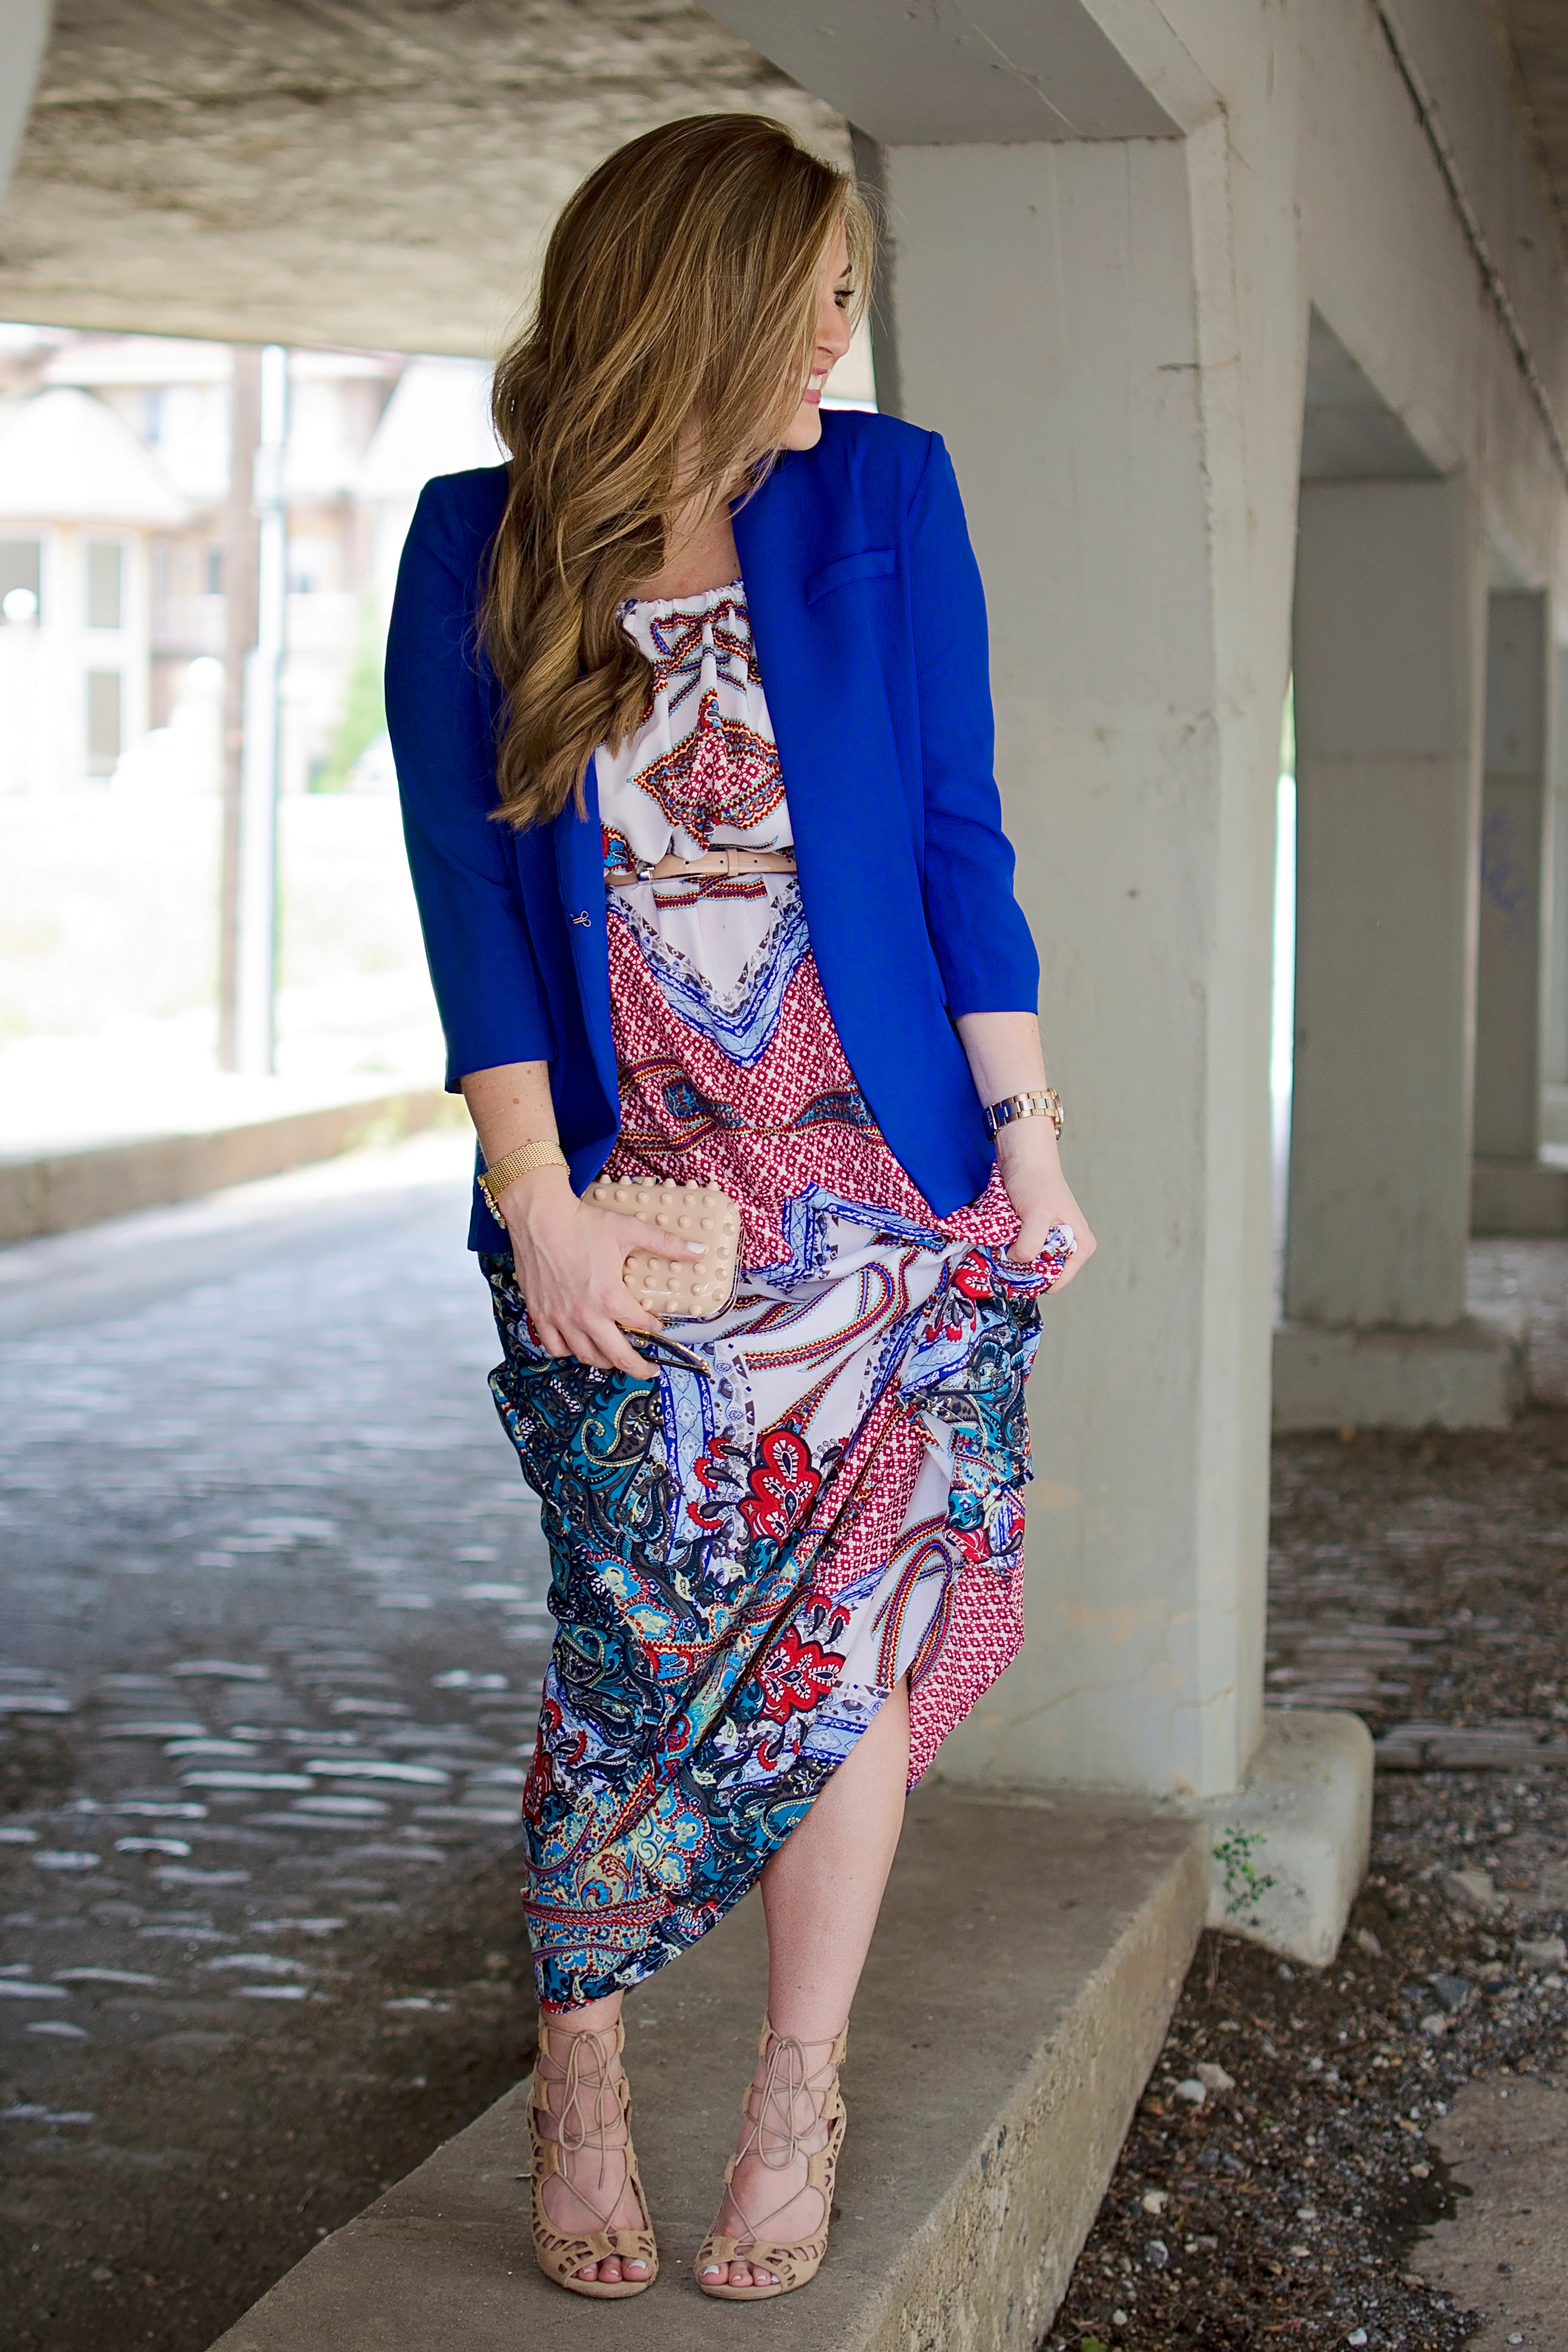 Laura B. wearing her lace up heels with a cute print maxi and bright blue blazer.